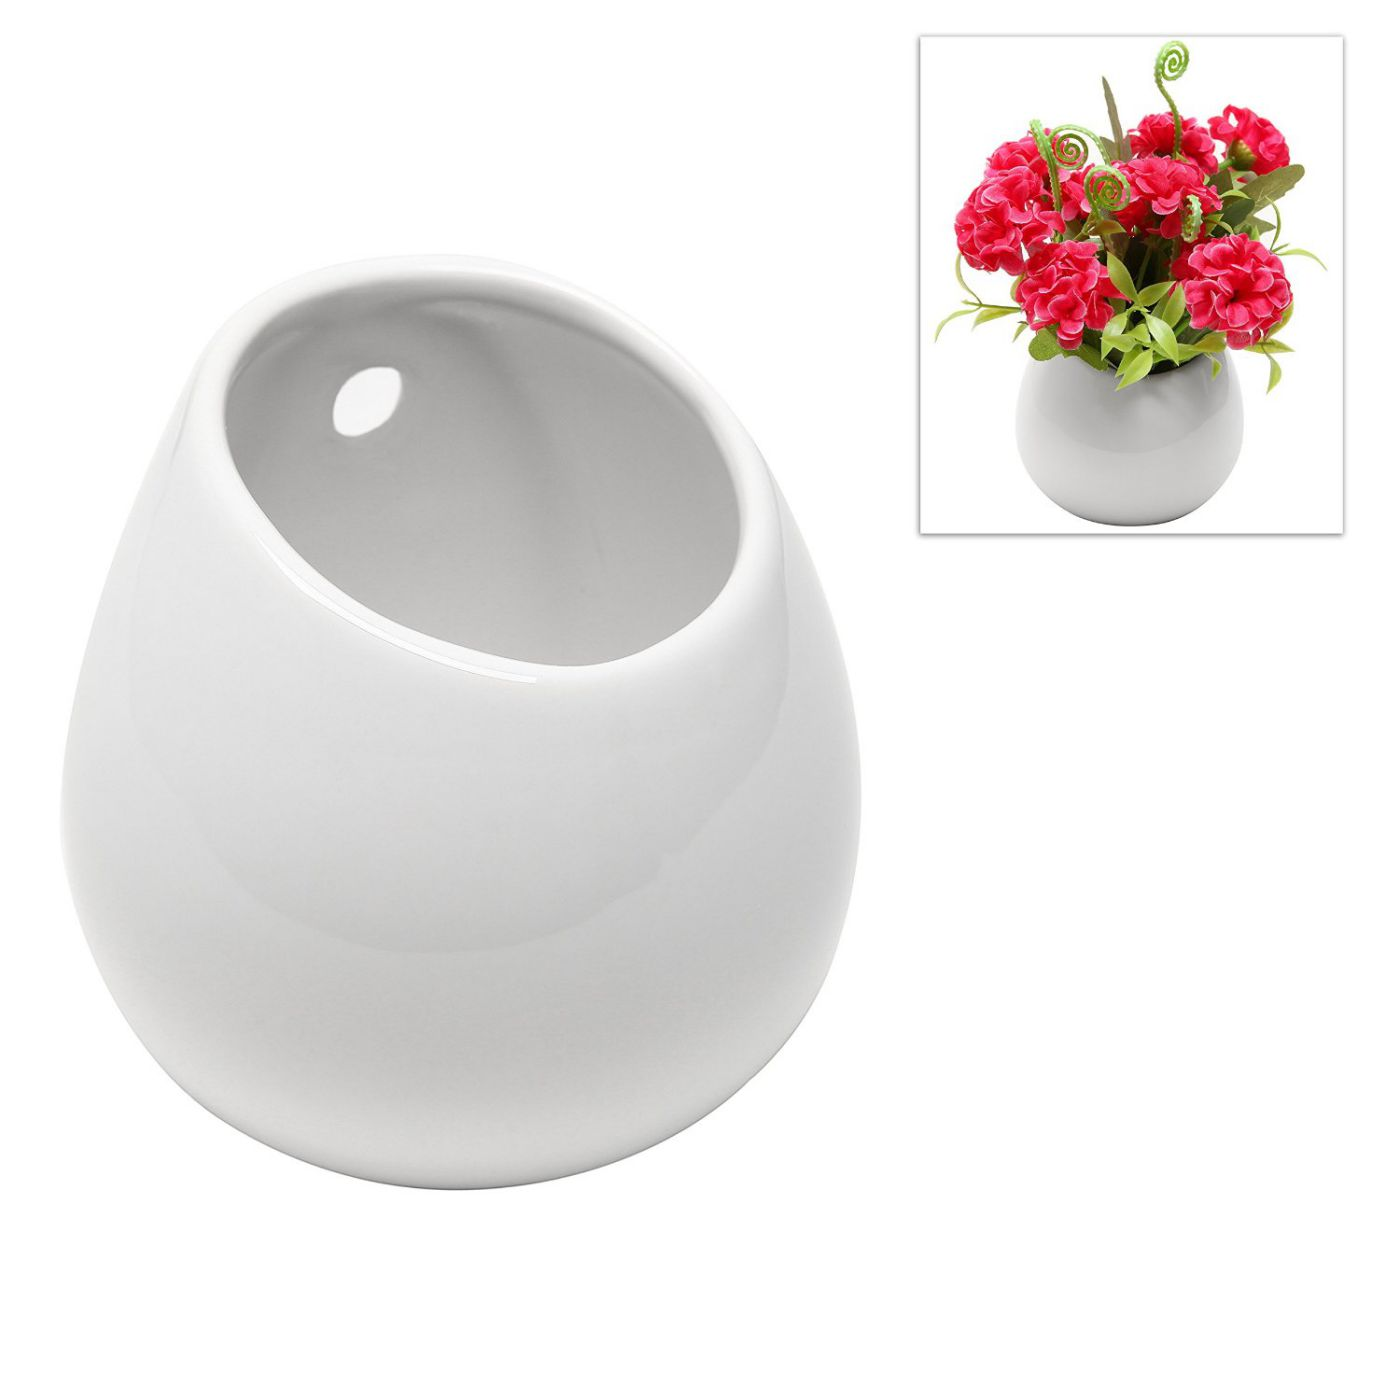 MyGift® White Petite Wall Mounted, Hanging or Freestanding Decorative Ceramic Flower Planter Vase Holder Display